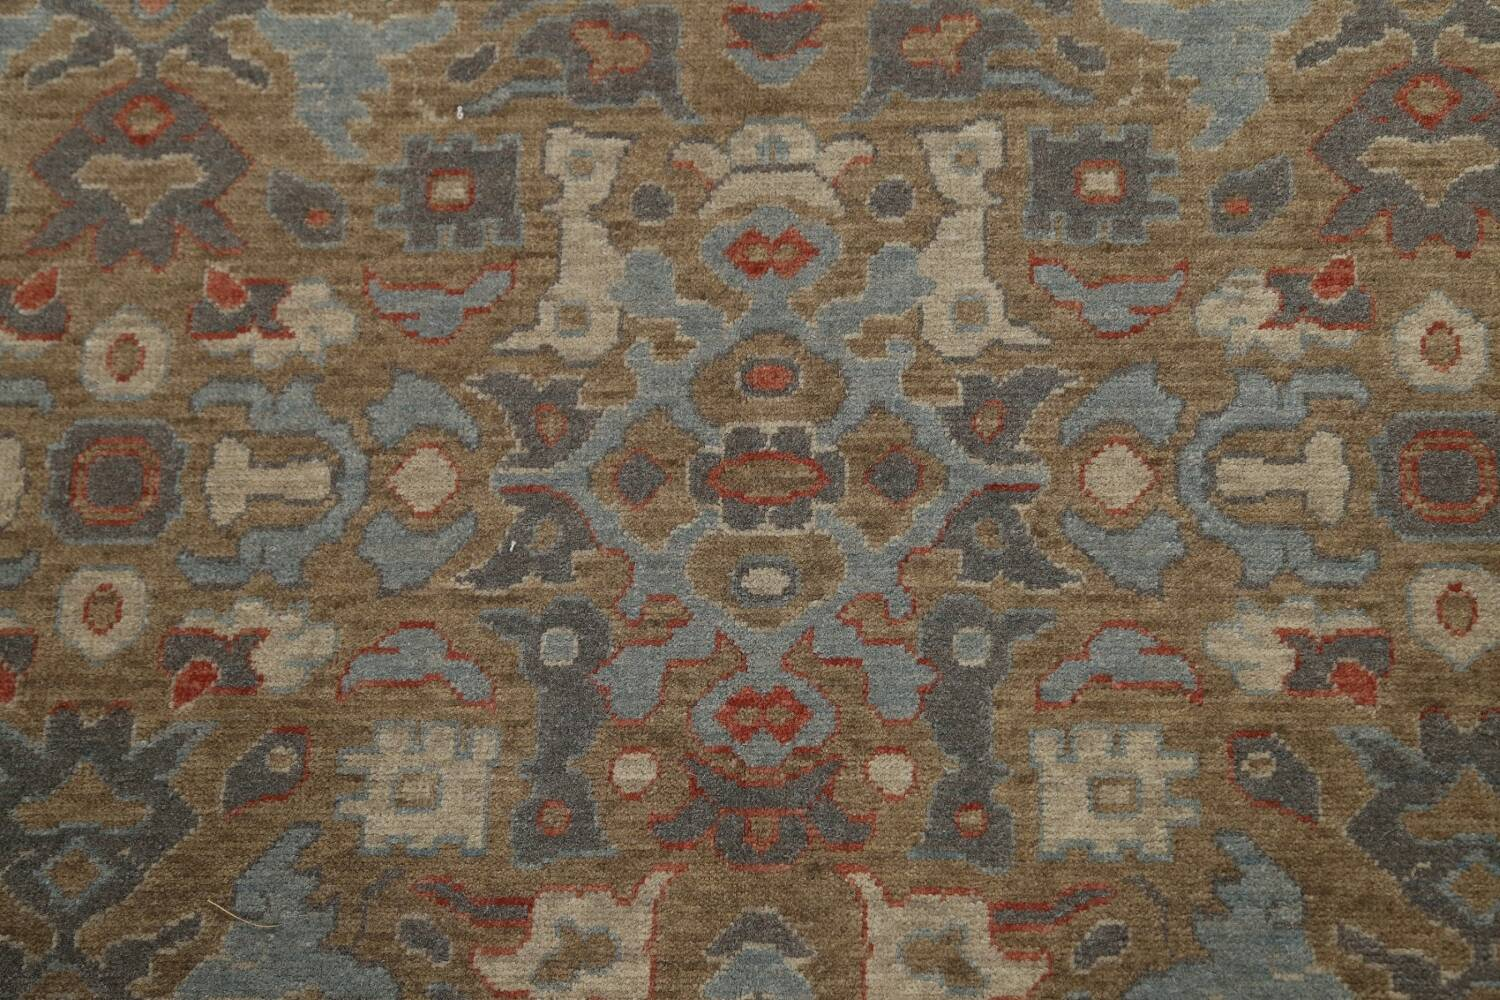 Silver Washed Ziegler Turkish Area Rug 9x12 image 10